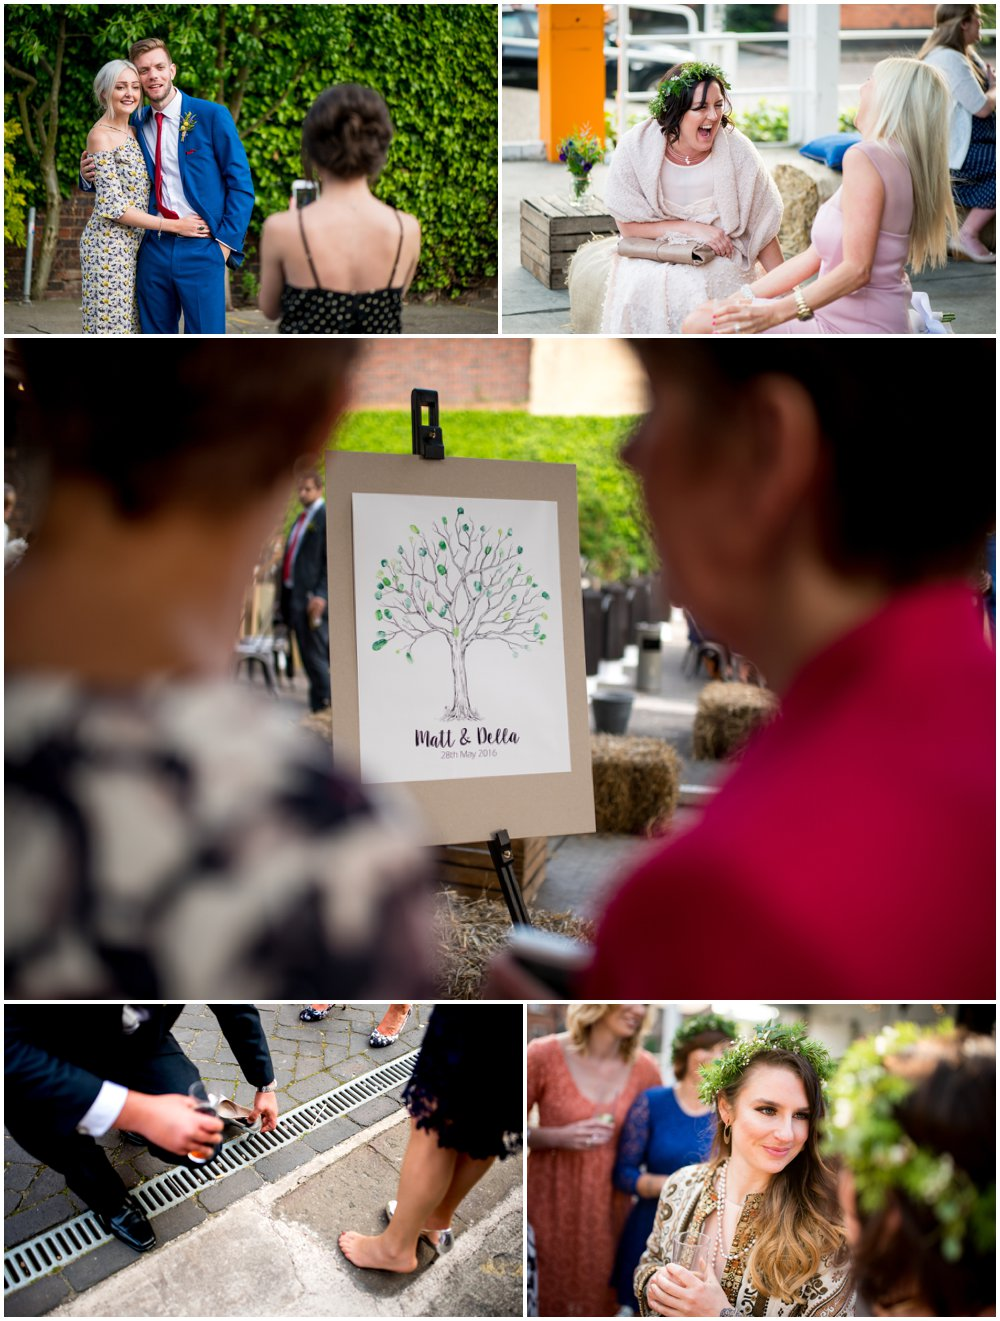 Matt and Della's alternative, relaxed wedding at The Bond Company, Digbeth, Birmingham by Lisa Carpenter Photography, West Midlands, Birmingham based wedding photographer.